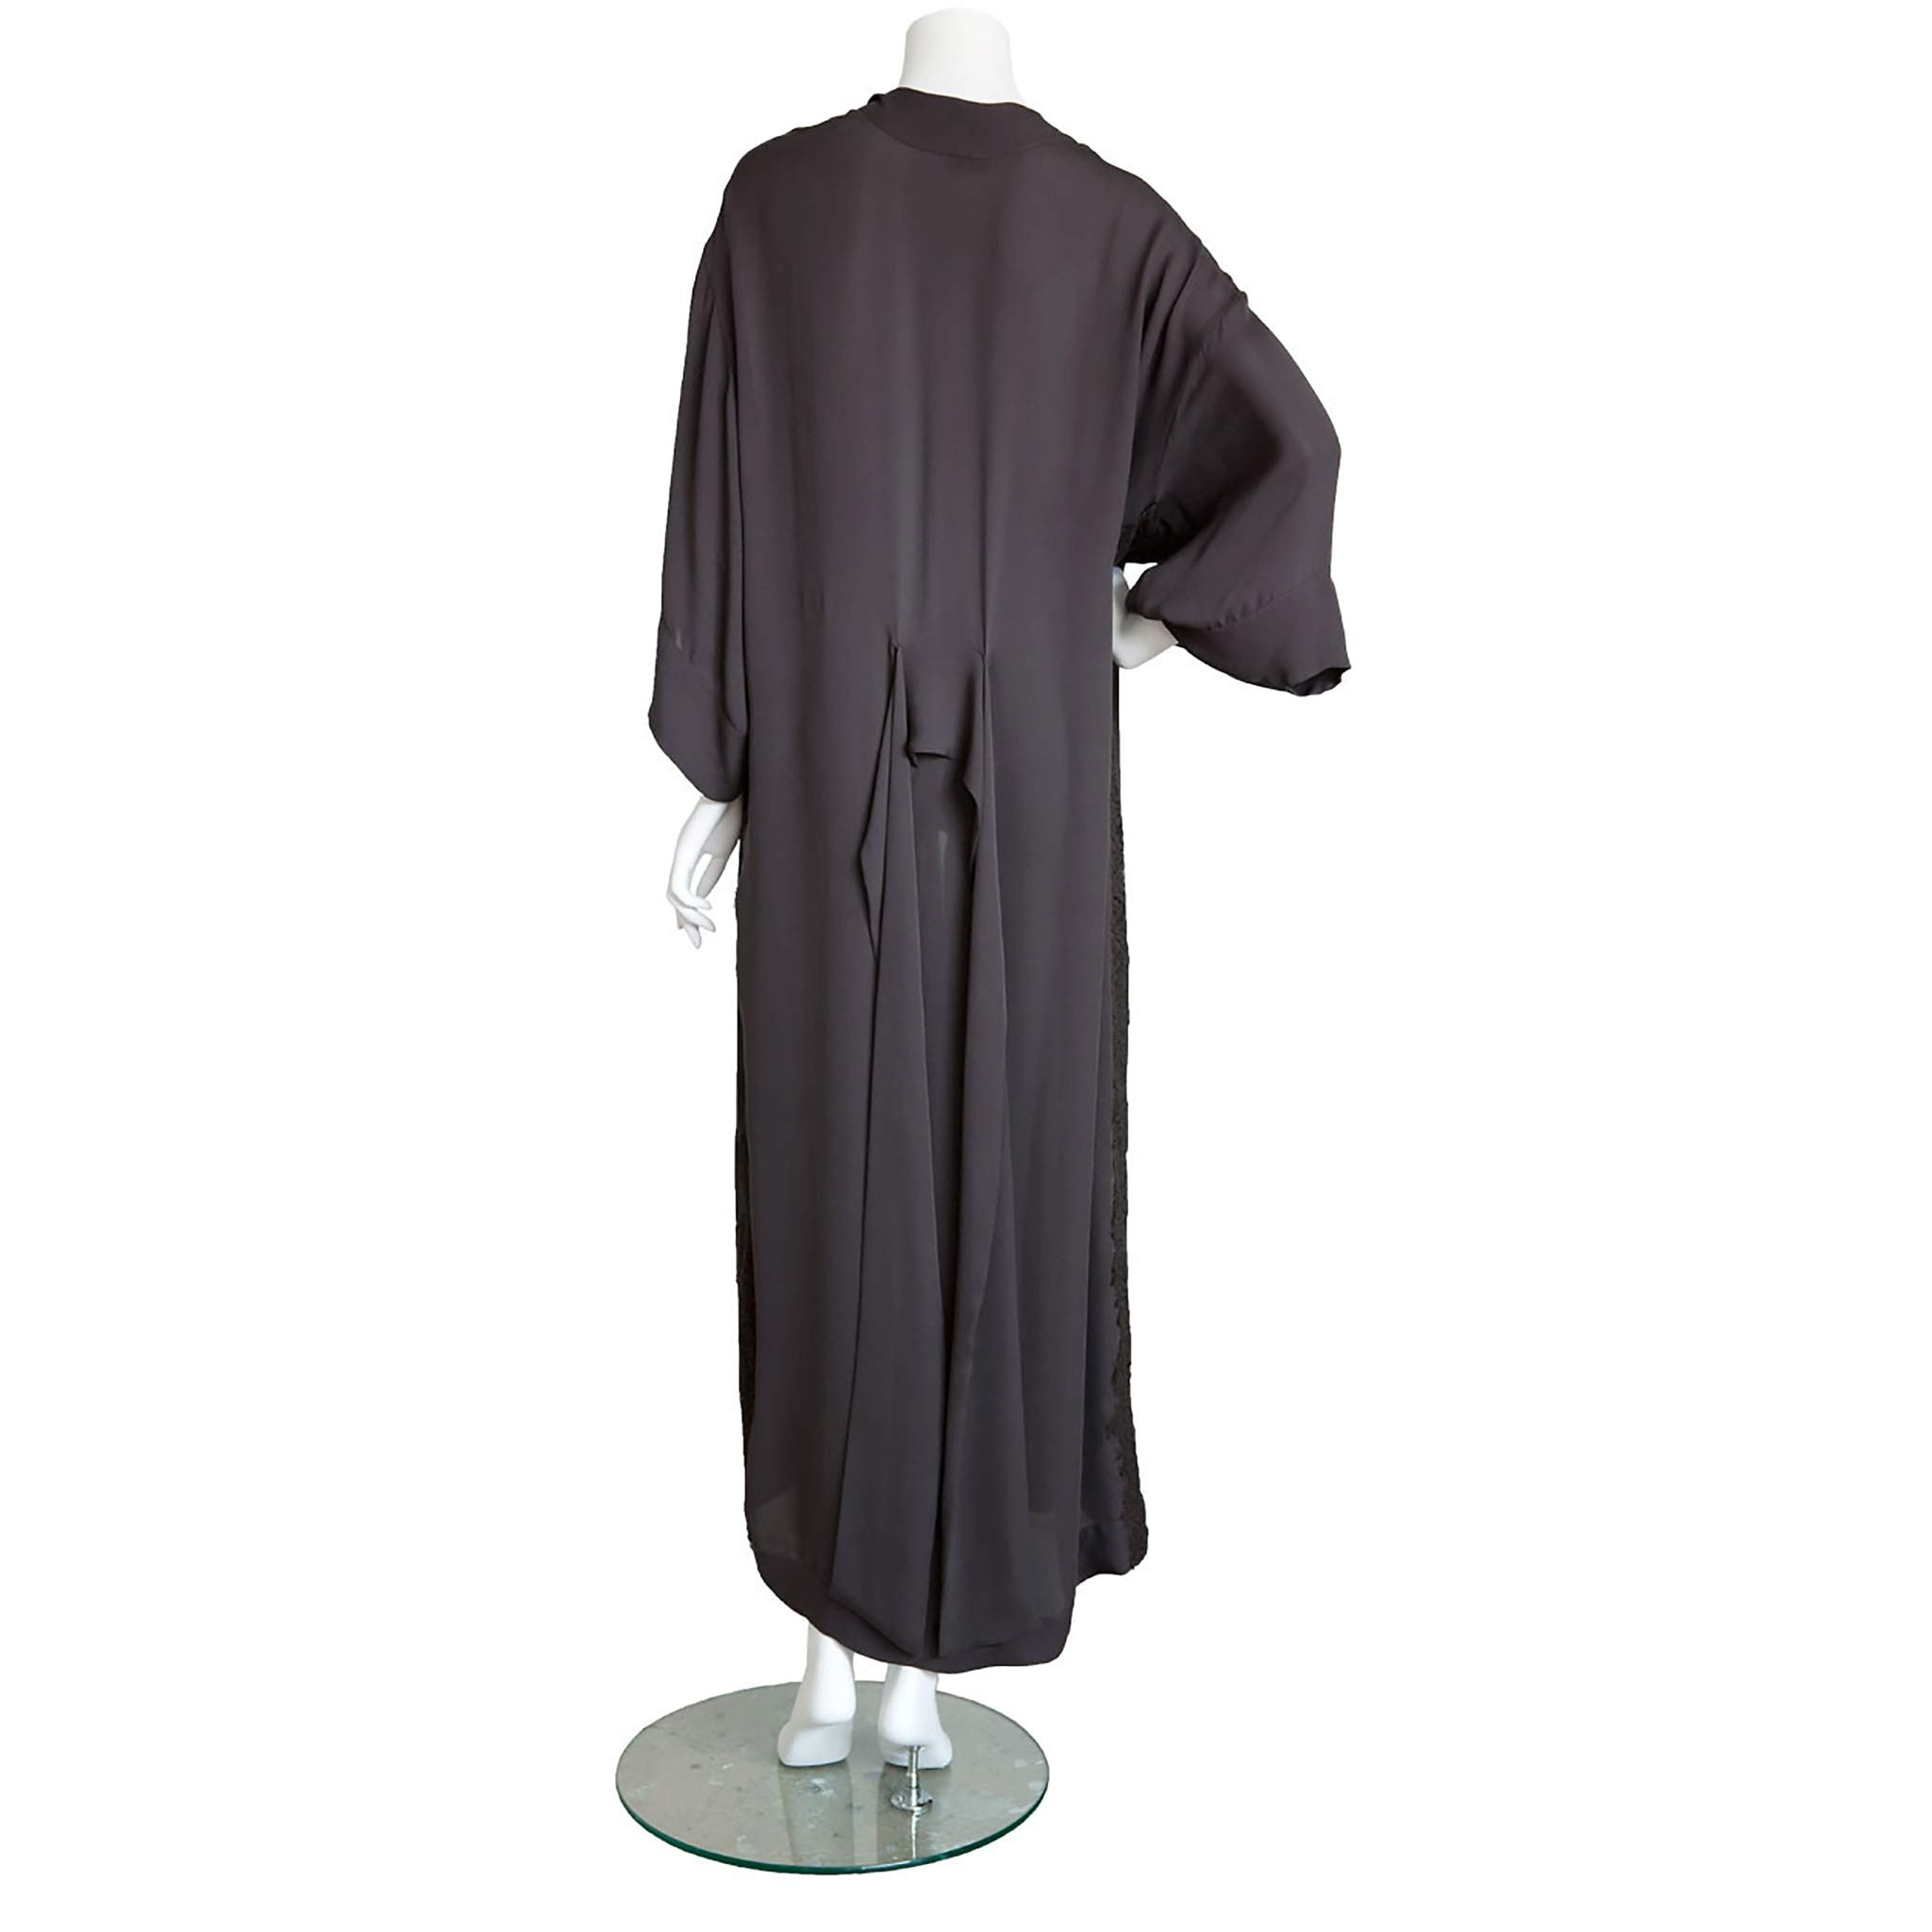 489a3b14e6 Asteria Dressing Gown in Diamond Slice Double Georgette with Lace ...